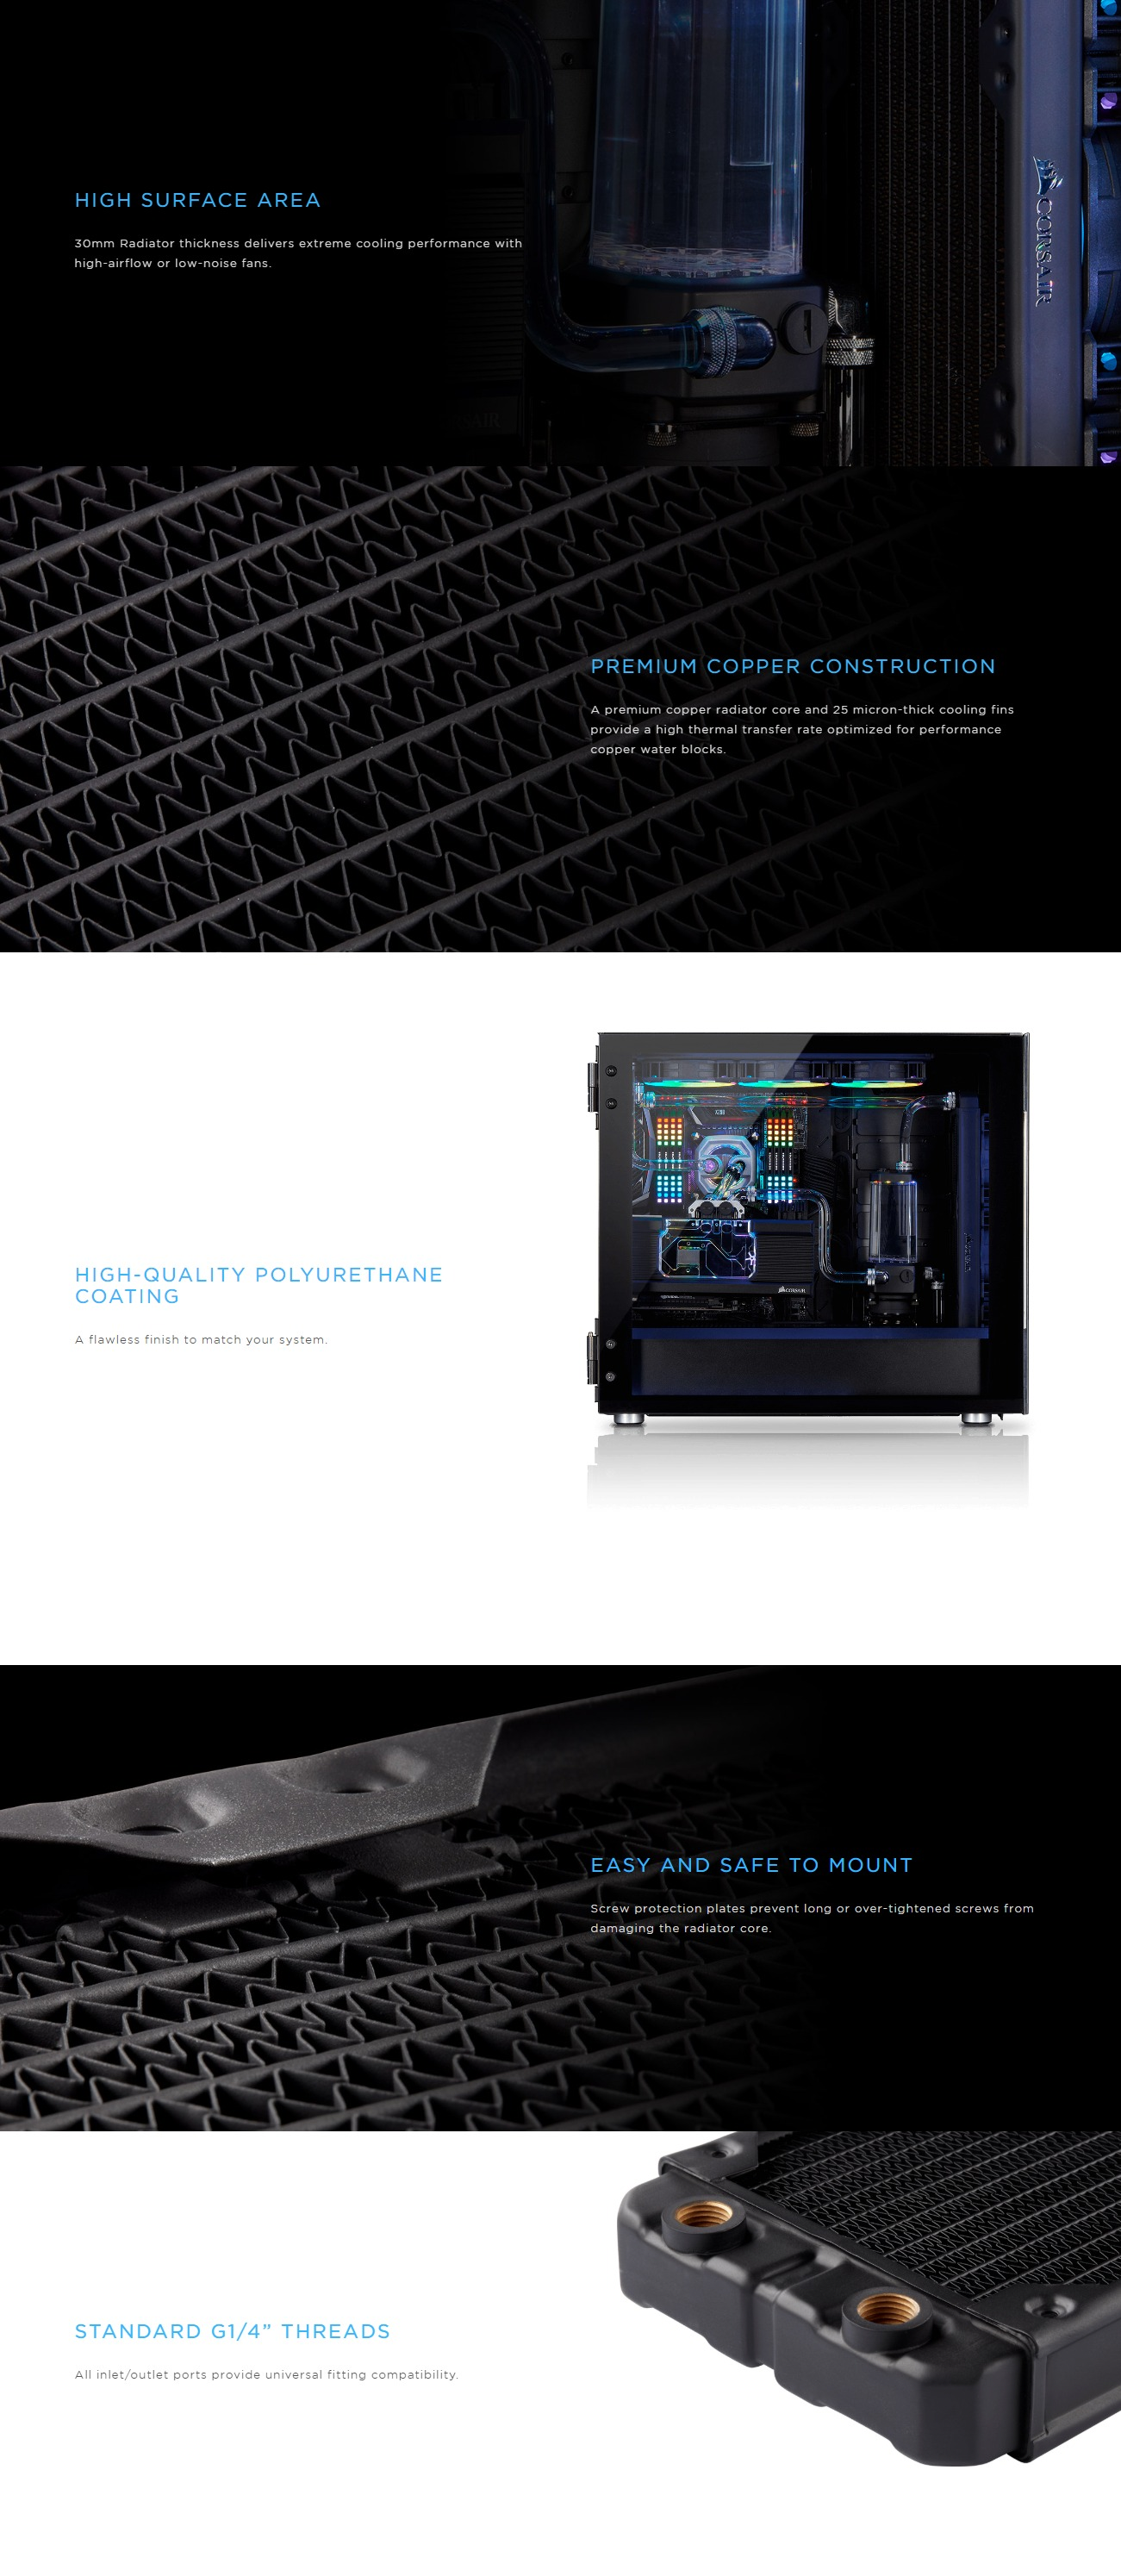 A large marketing image providing additional information about the product Corsair Hydro X Series XR5 360mm Radiator - Additional alt info not provided